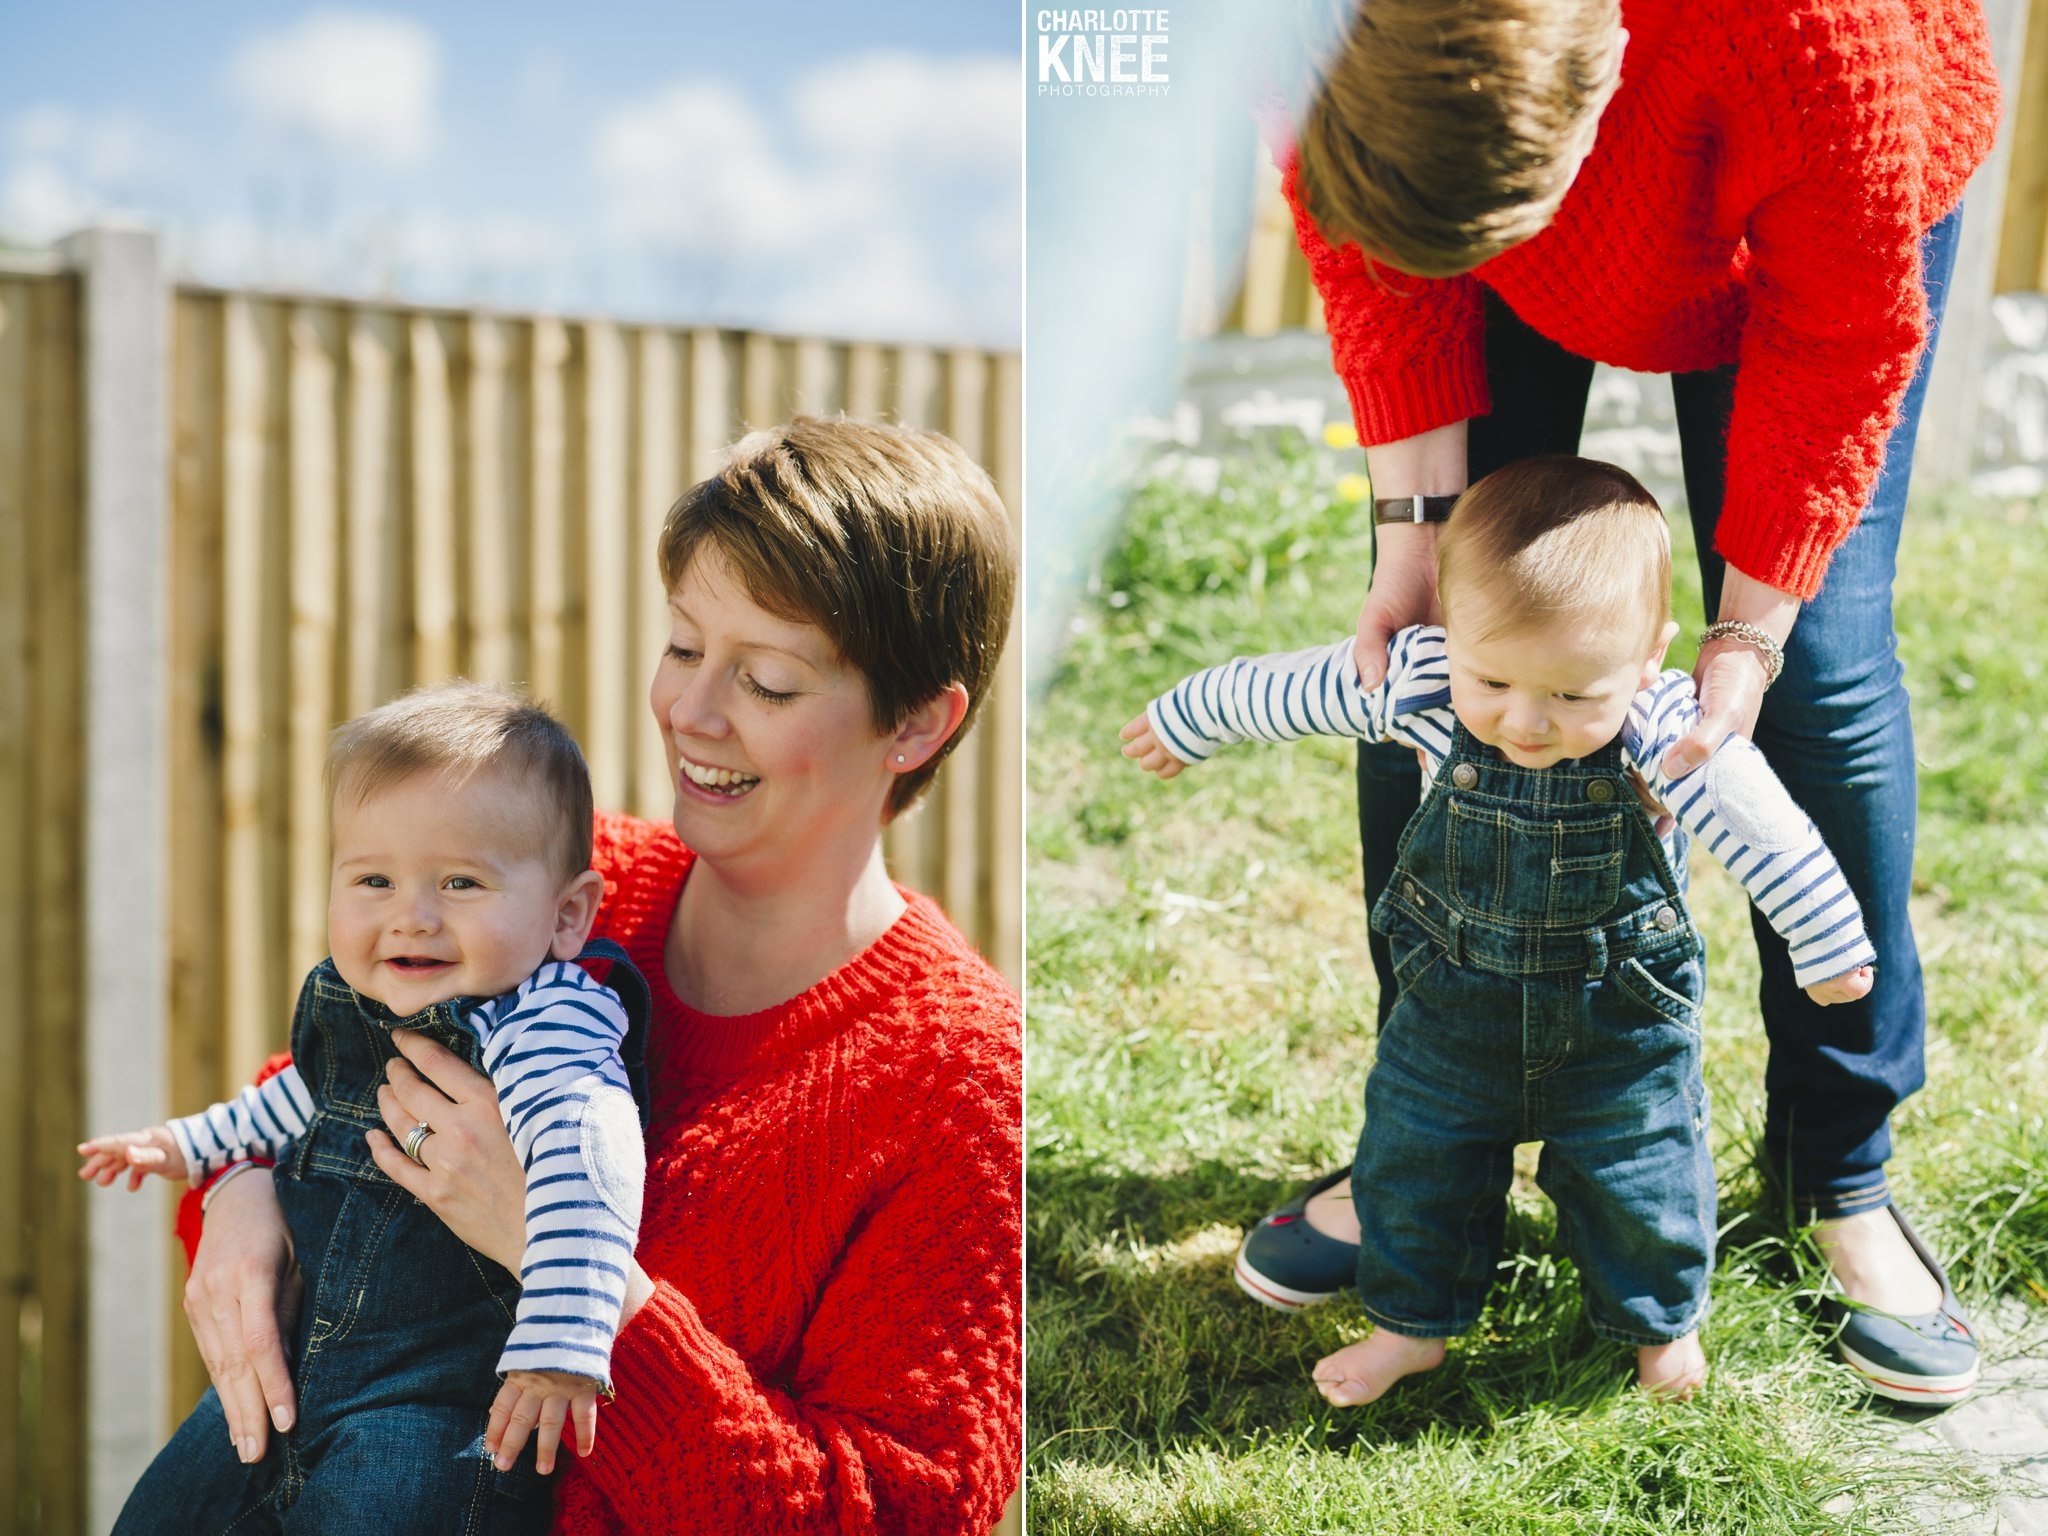 London Family Lifestyle Portrait Copyright Charlotte Knee Photography_0038.jpg